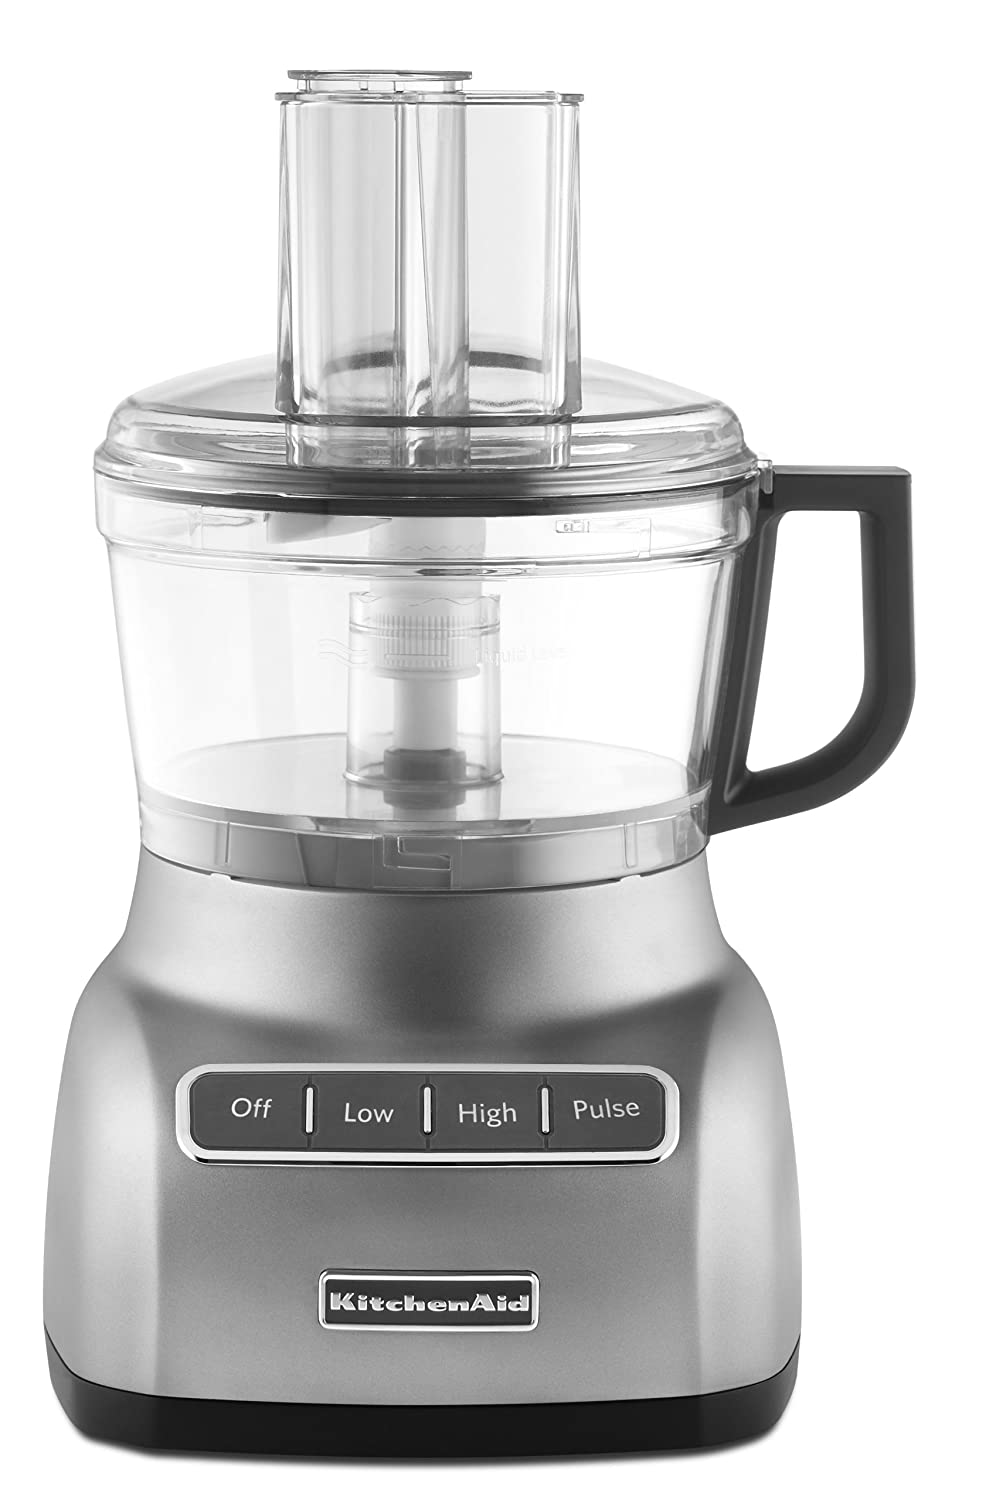 KitchenAid KFP0711CU: The Essential Device for Every Kitchen